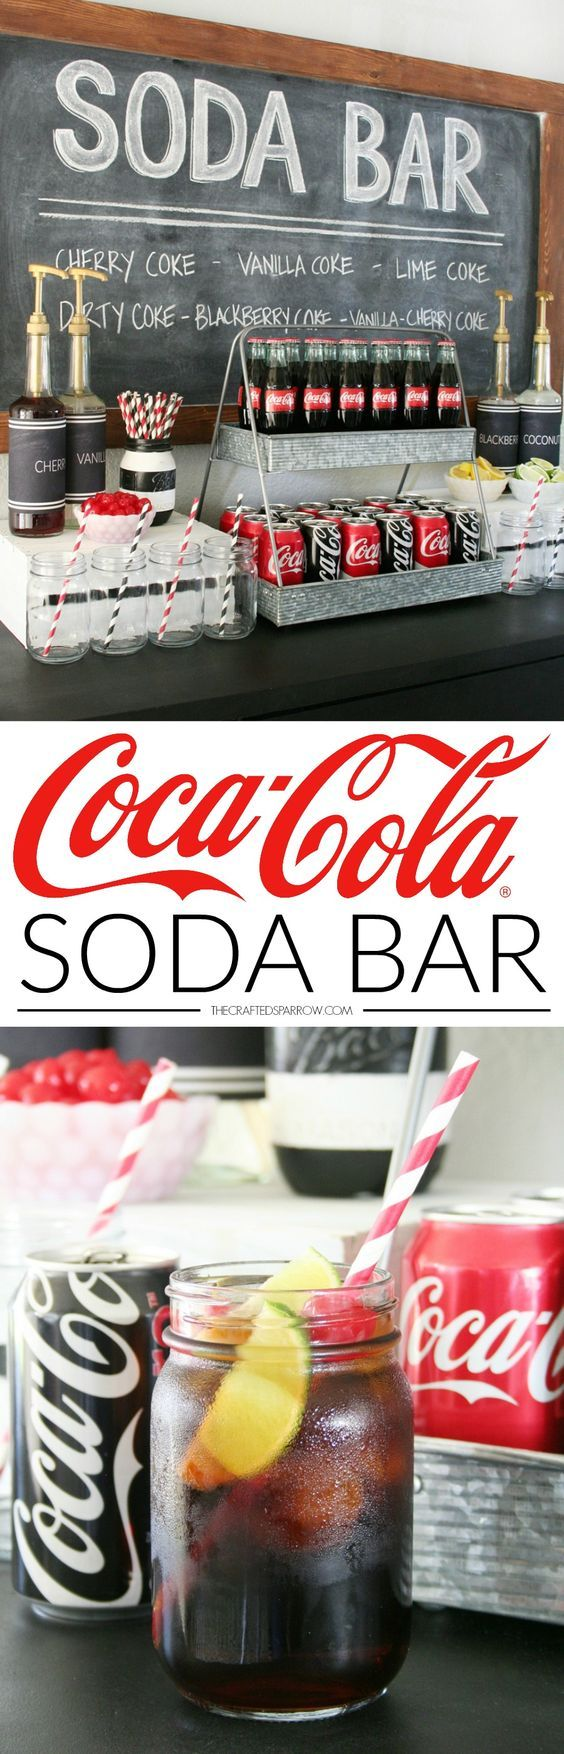 What a fun party idea - an old fashioned soda bar!